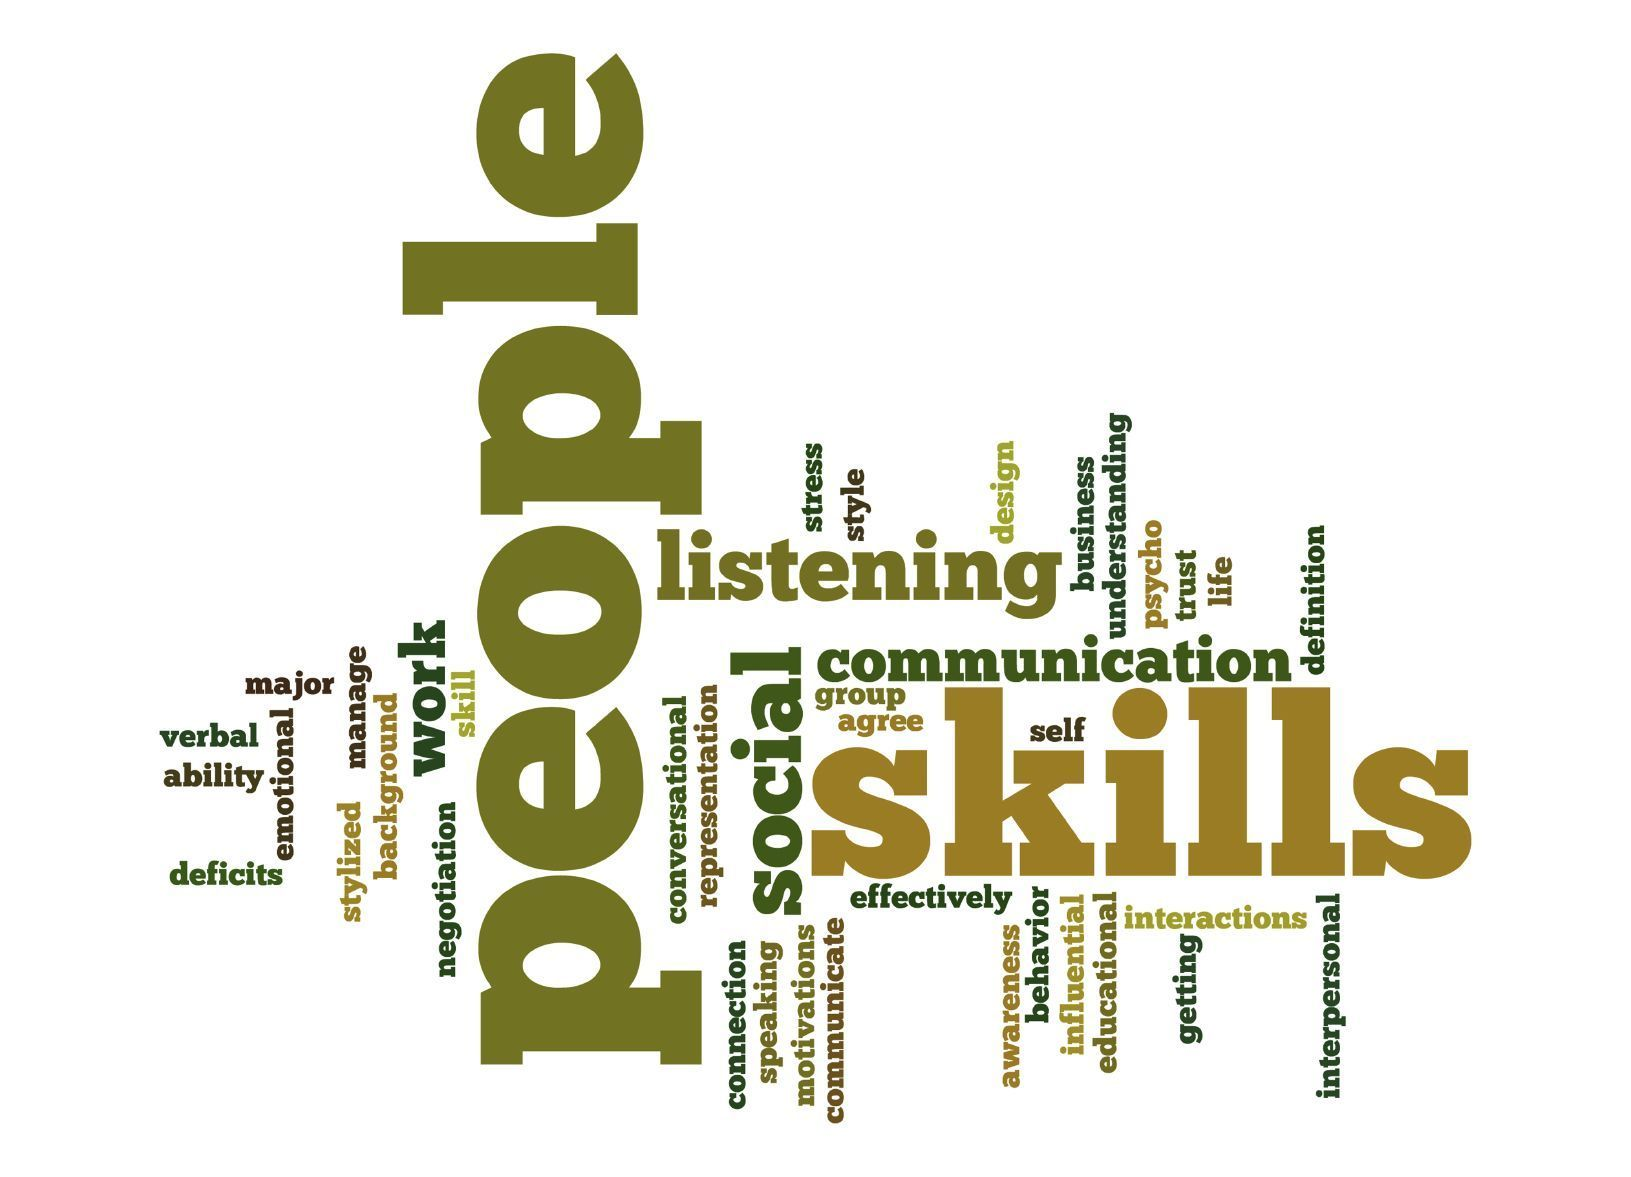 Best interpersonal skills to list on a resume